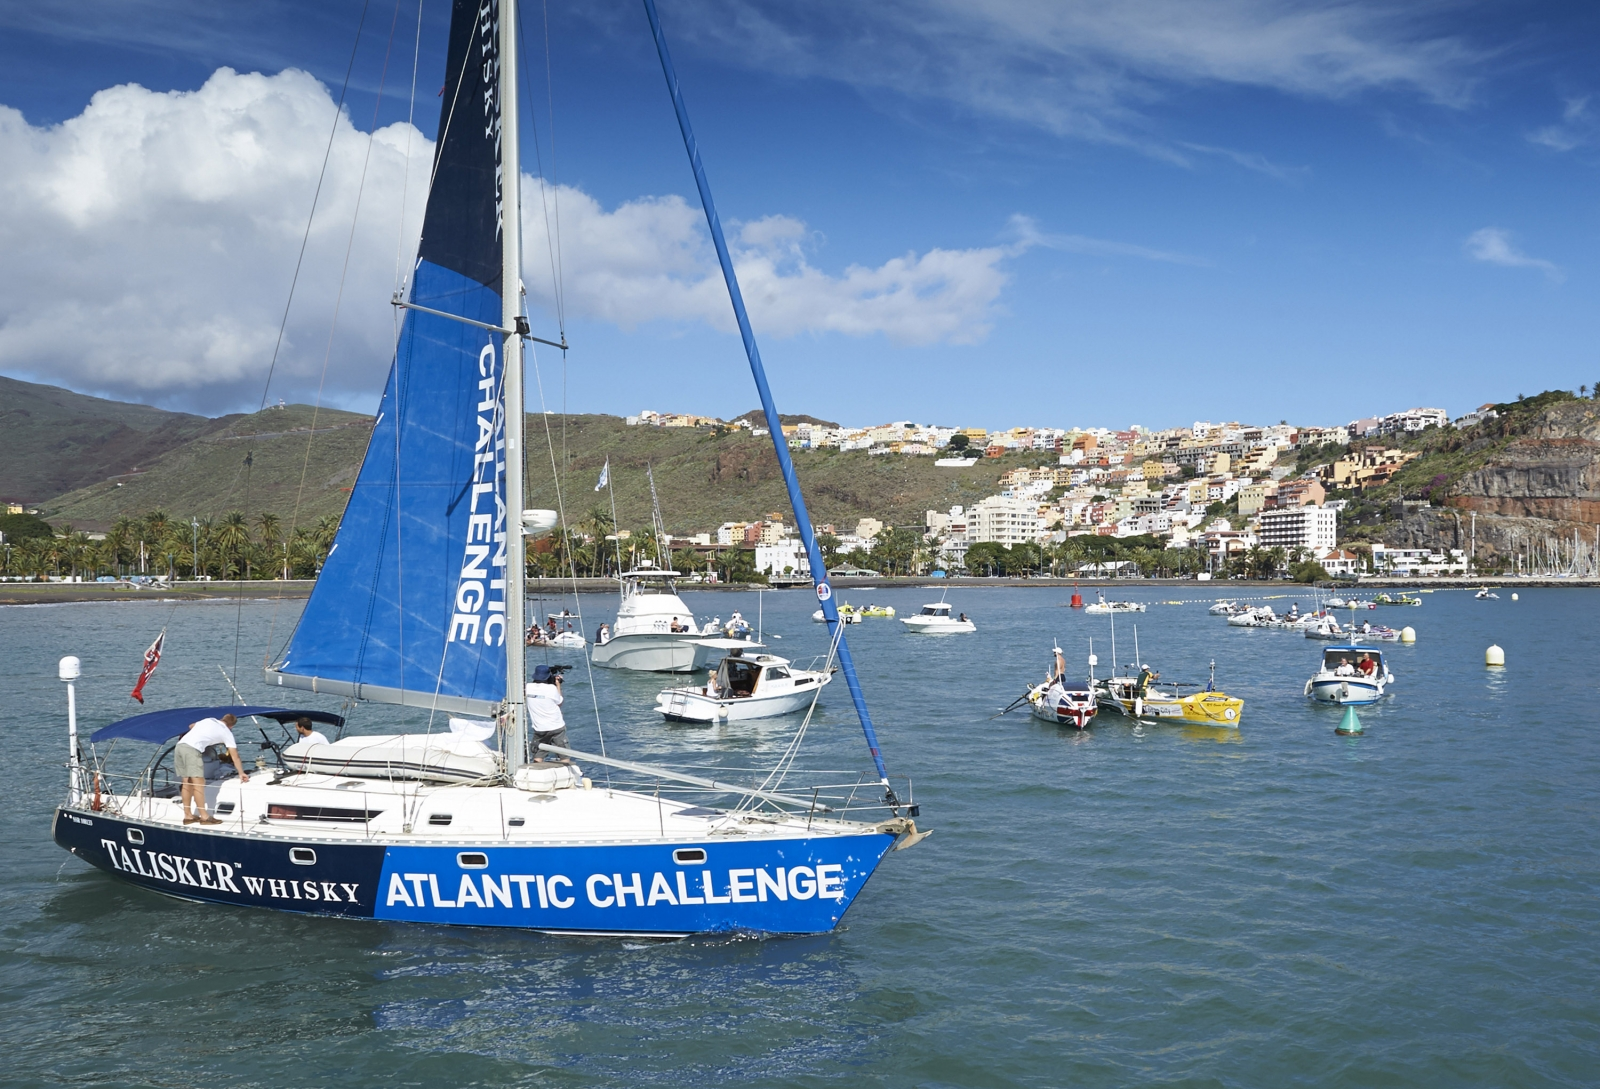 Atlantic row